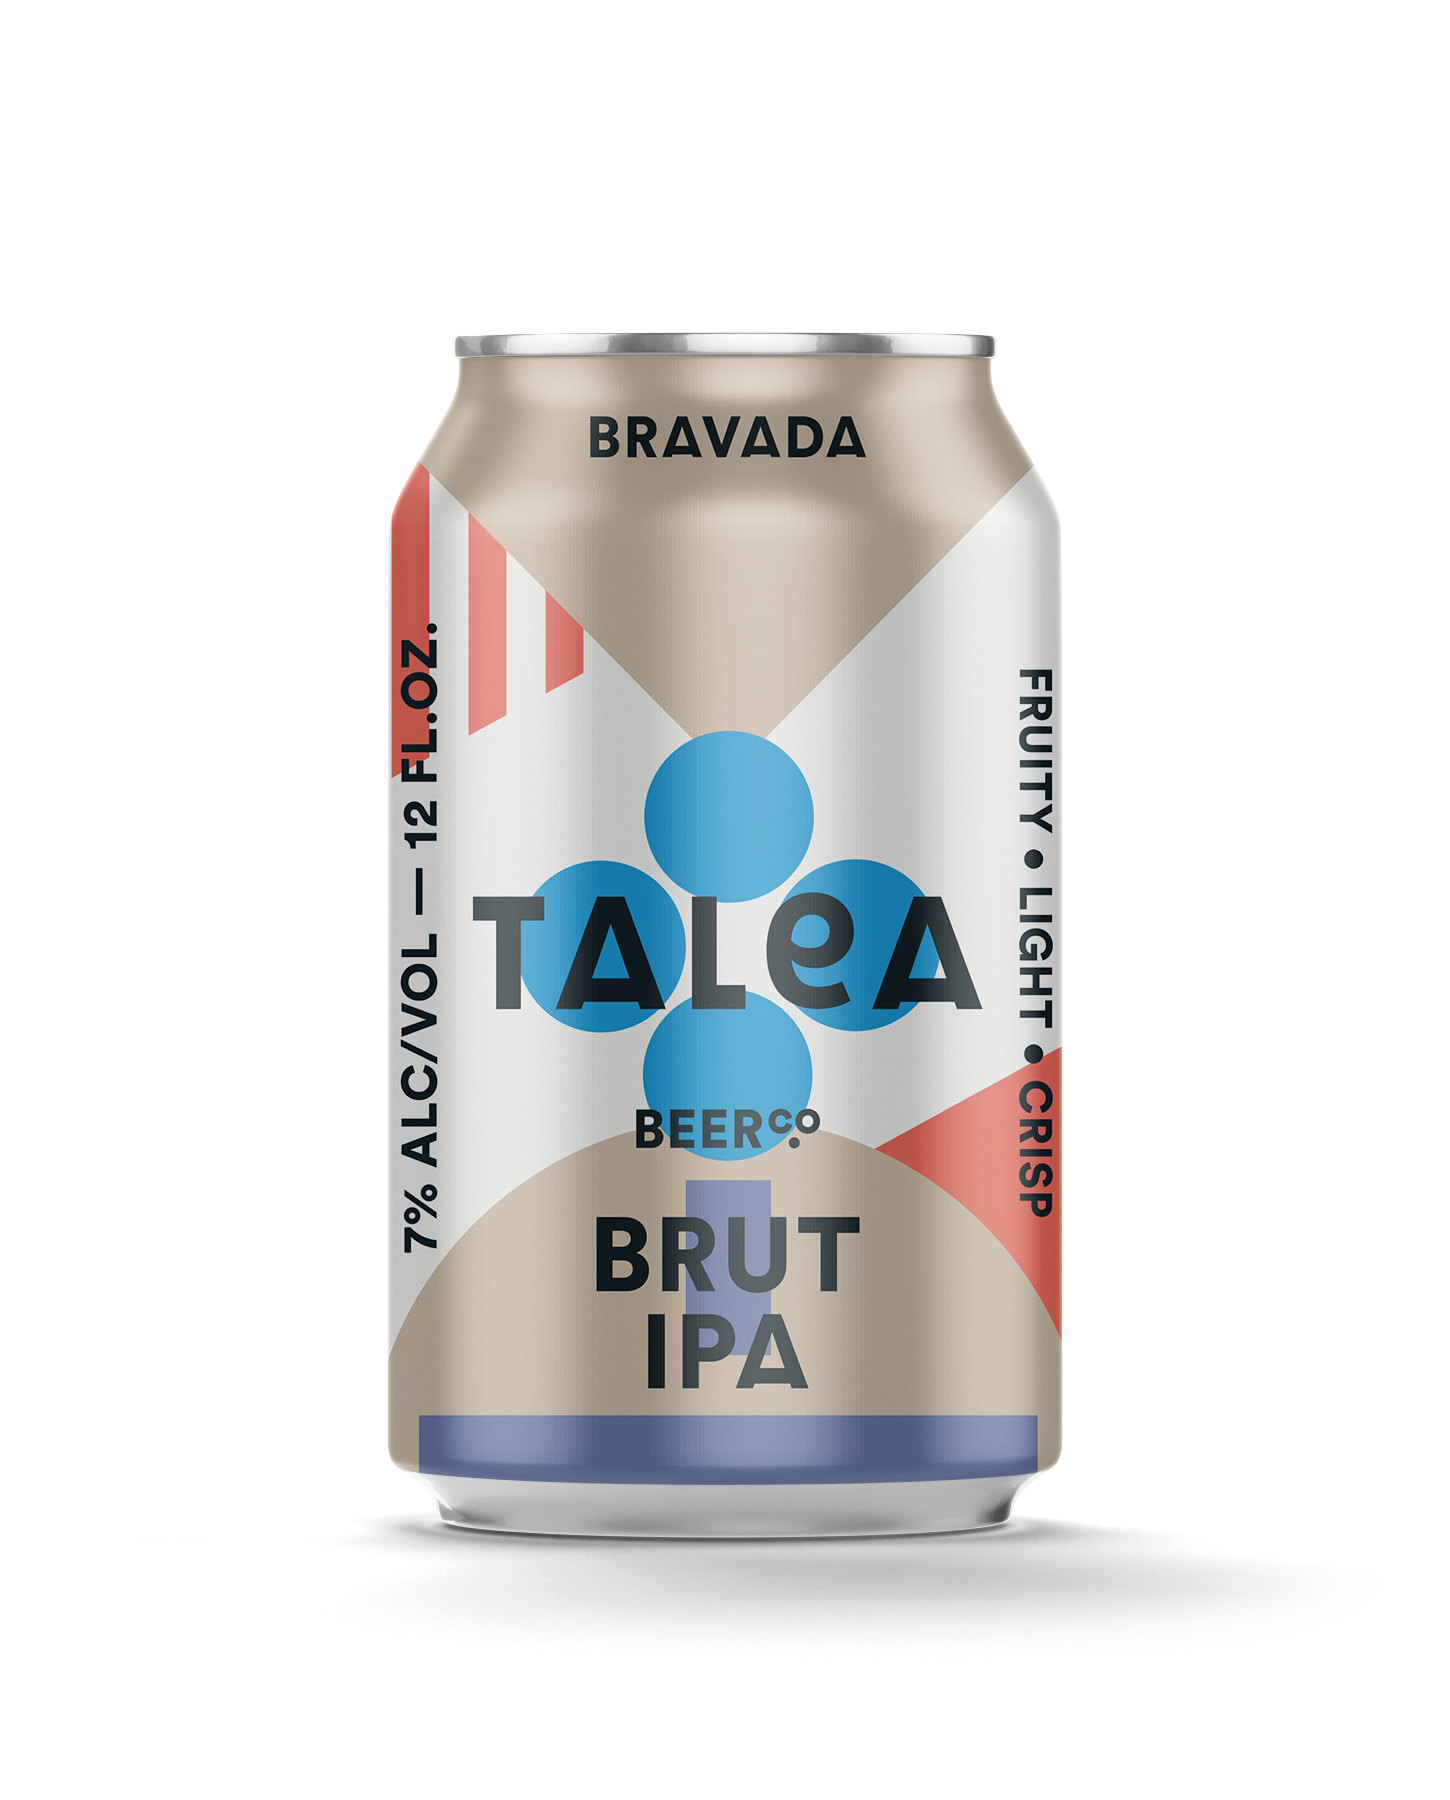 TALEA Bravada beer Label Full Size